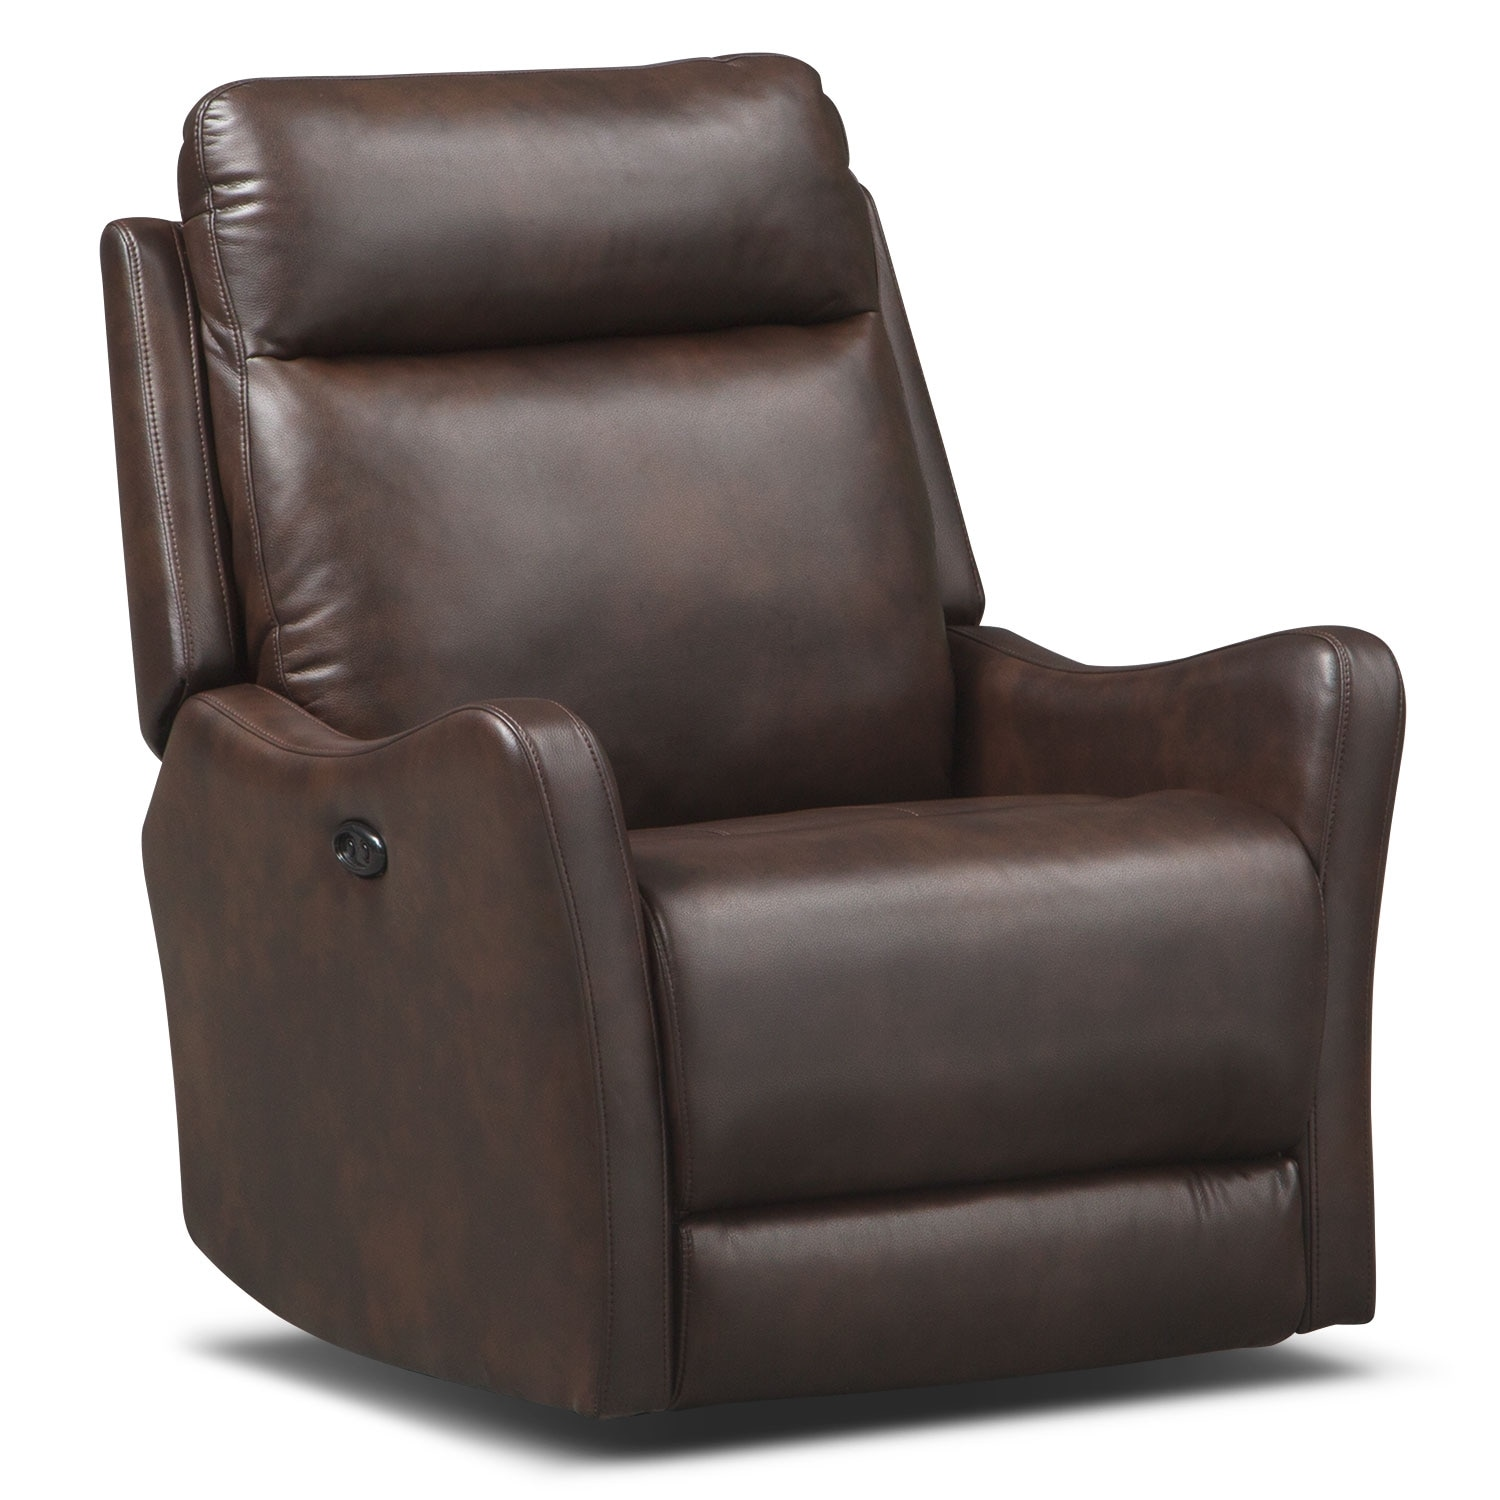 Living Room Furniture - Enzo Power Recliner - Brown